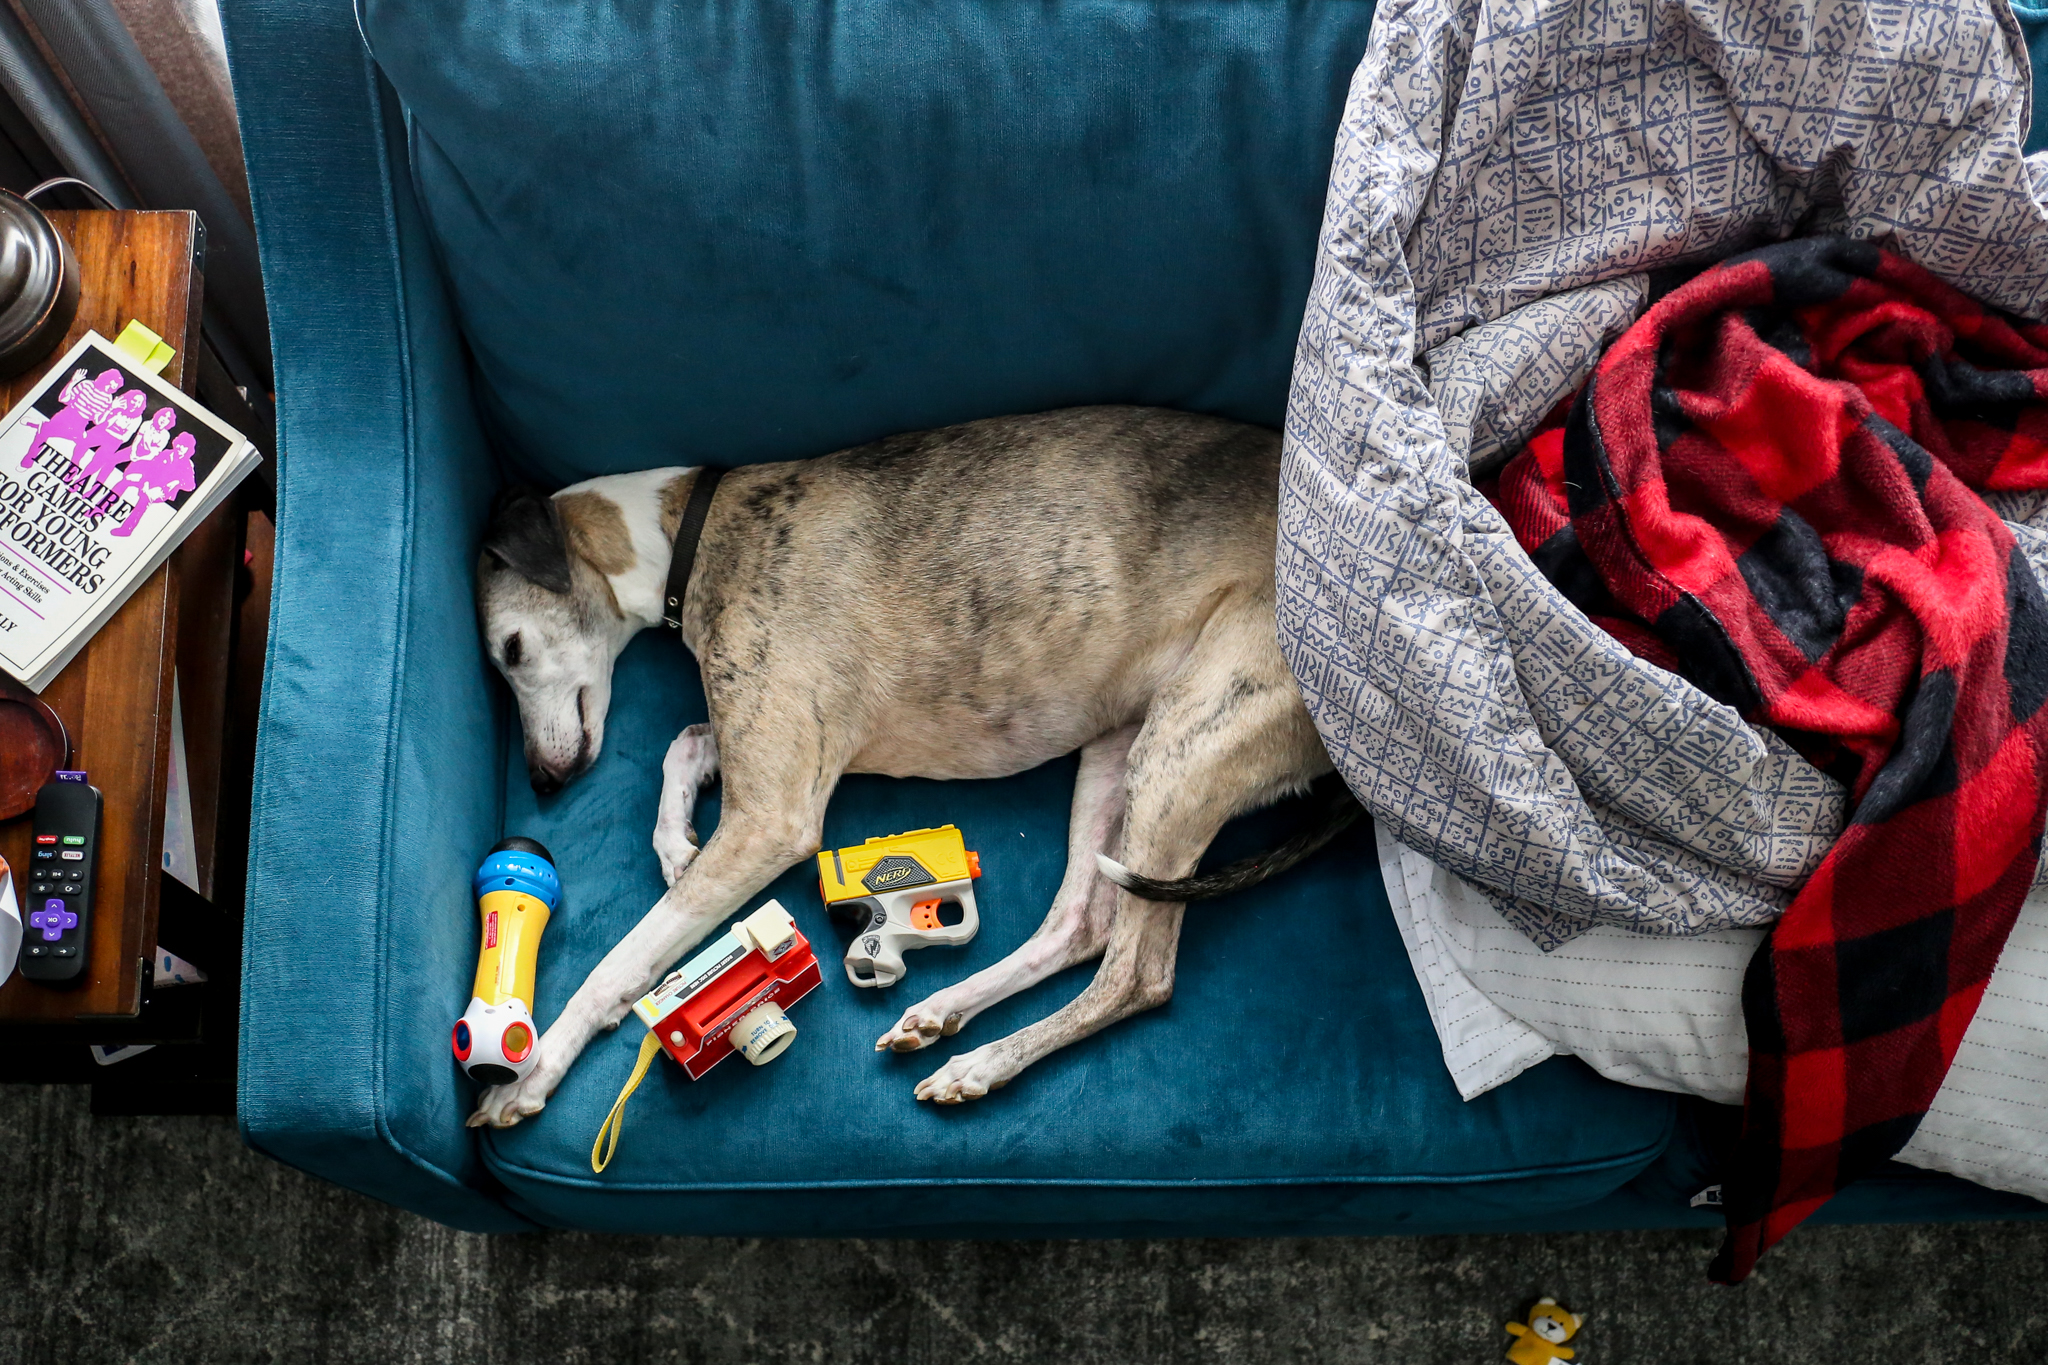 Dog surrounded by kids toys during an at home family photography session in Lehigh Valley, PA.